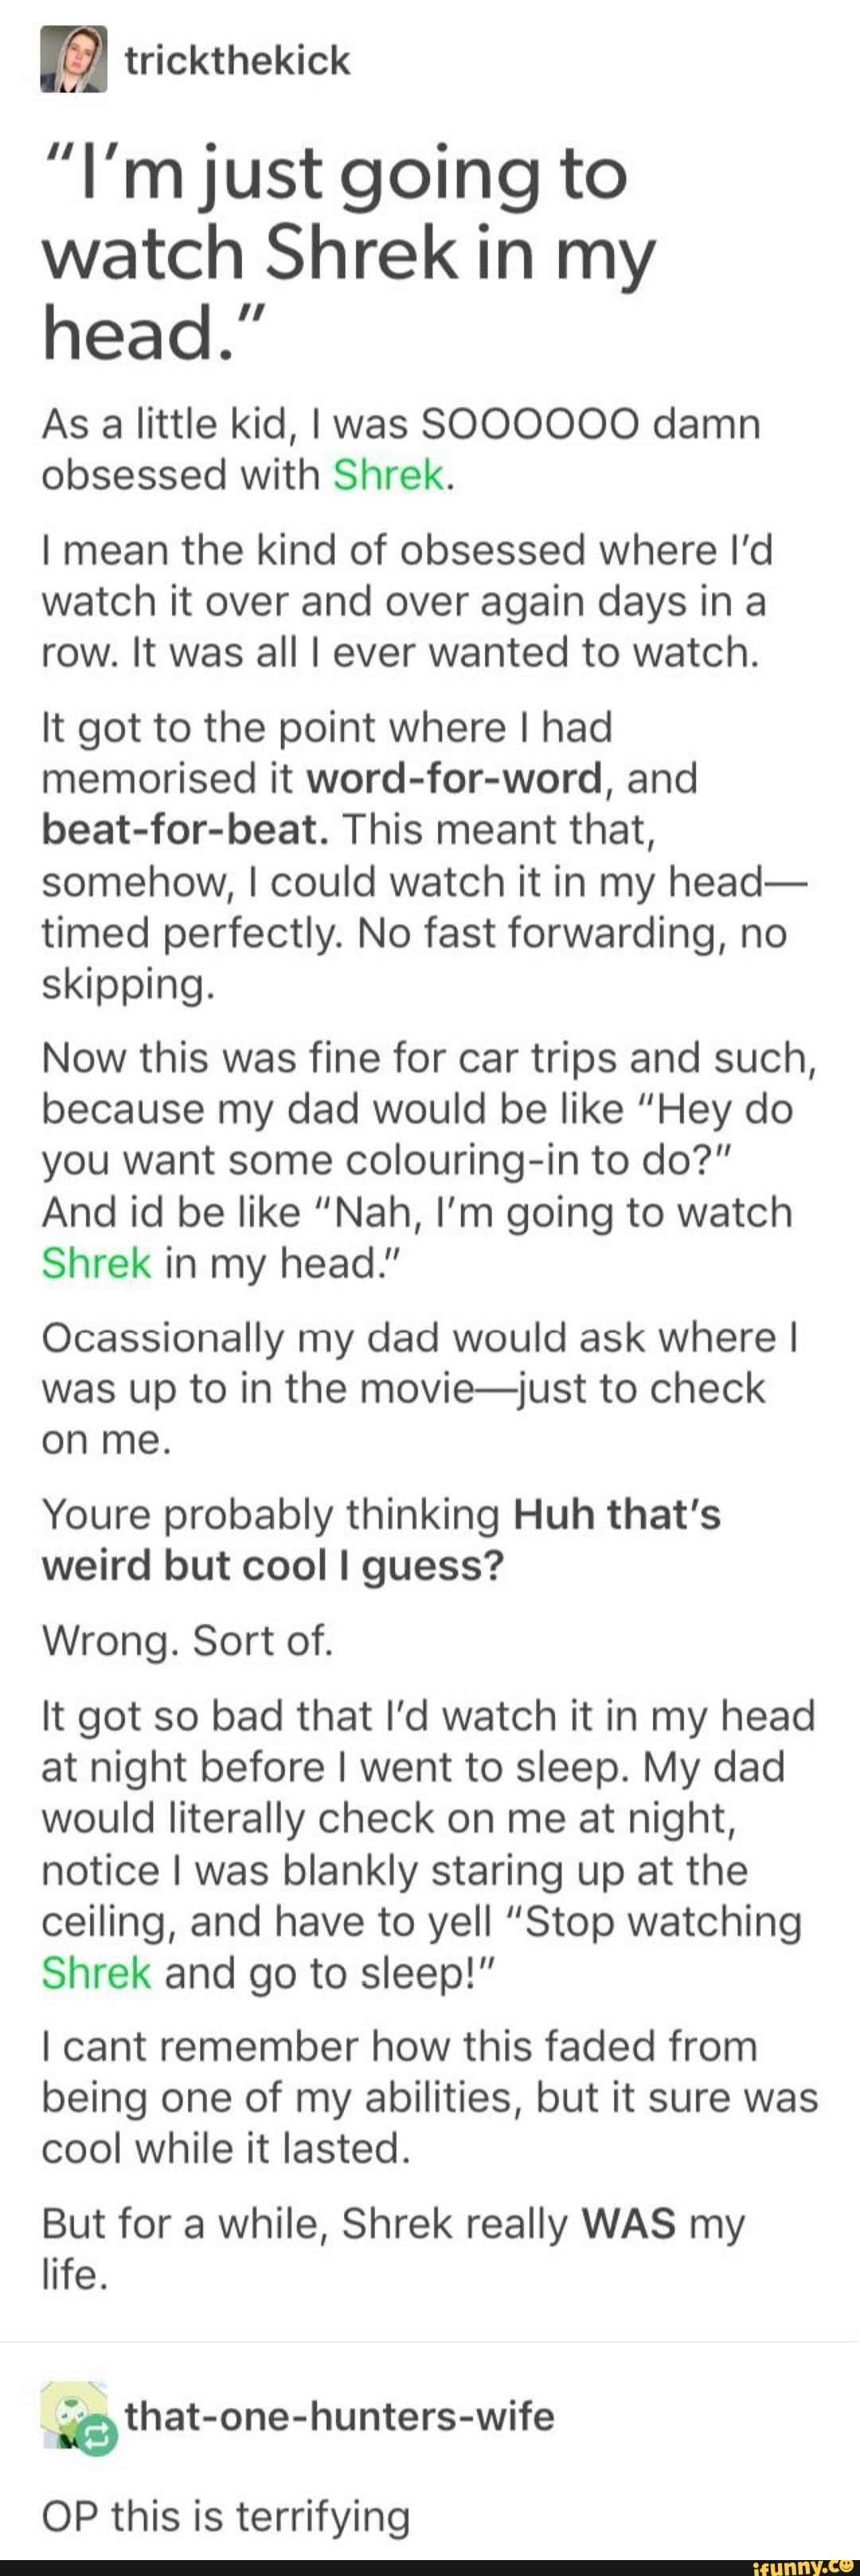 L Mjust Going To Watch Shrek In My Head As A Little Kid I Was Soooooo Damn Obsessed With Shrek I Mean The Kind Of Obsessed Where I D Watch It Over And Over